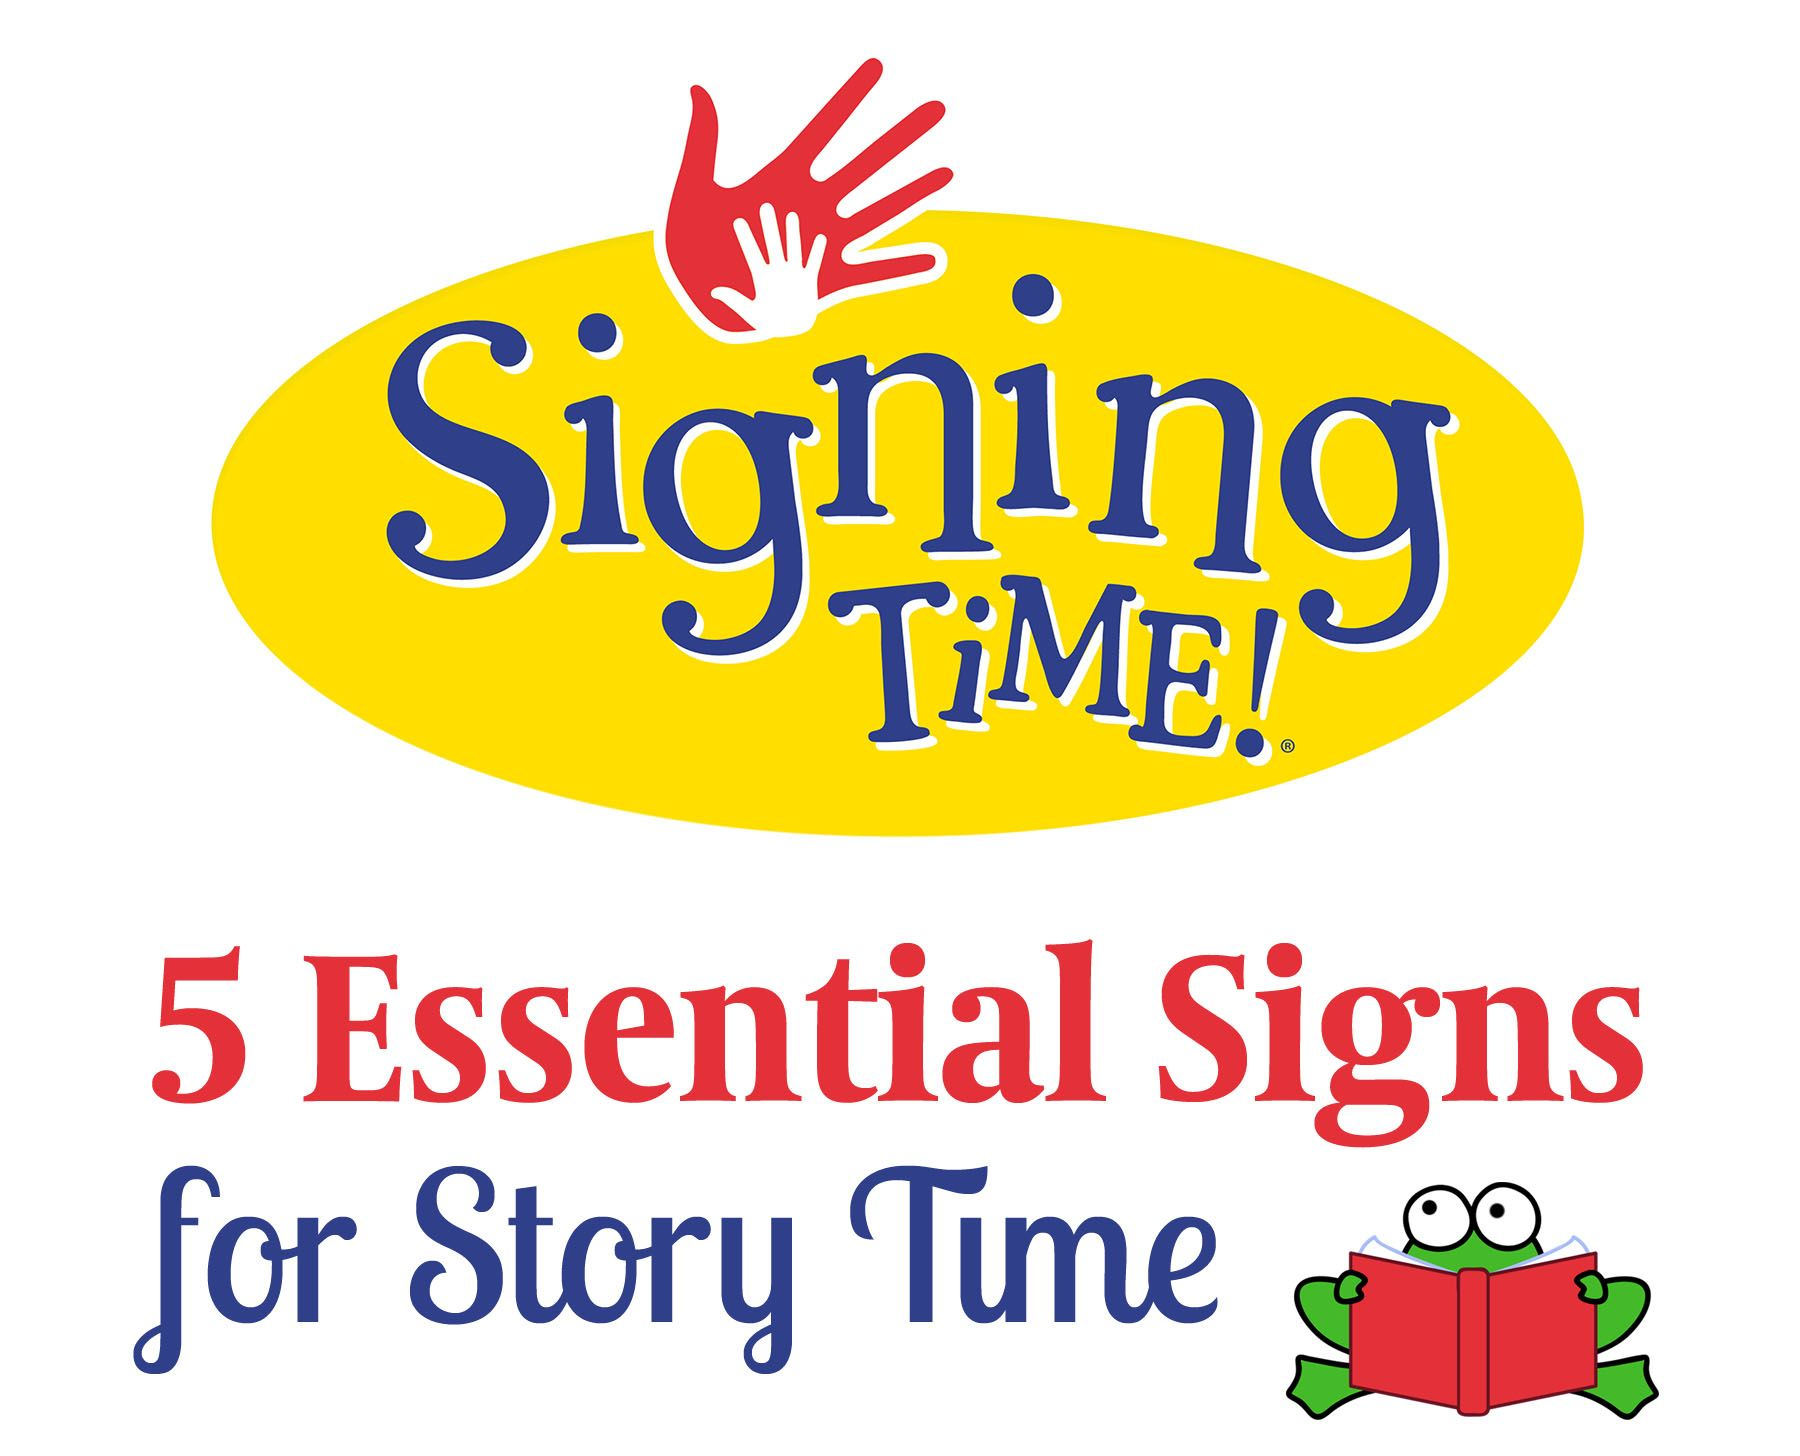 Five Essential Signs For Story Time Signing Time Story Time Kids Reading Read Sign